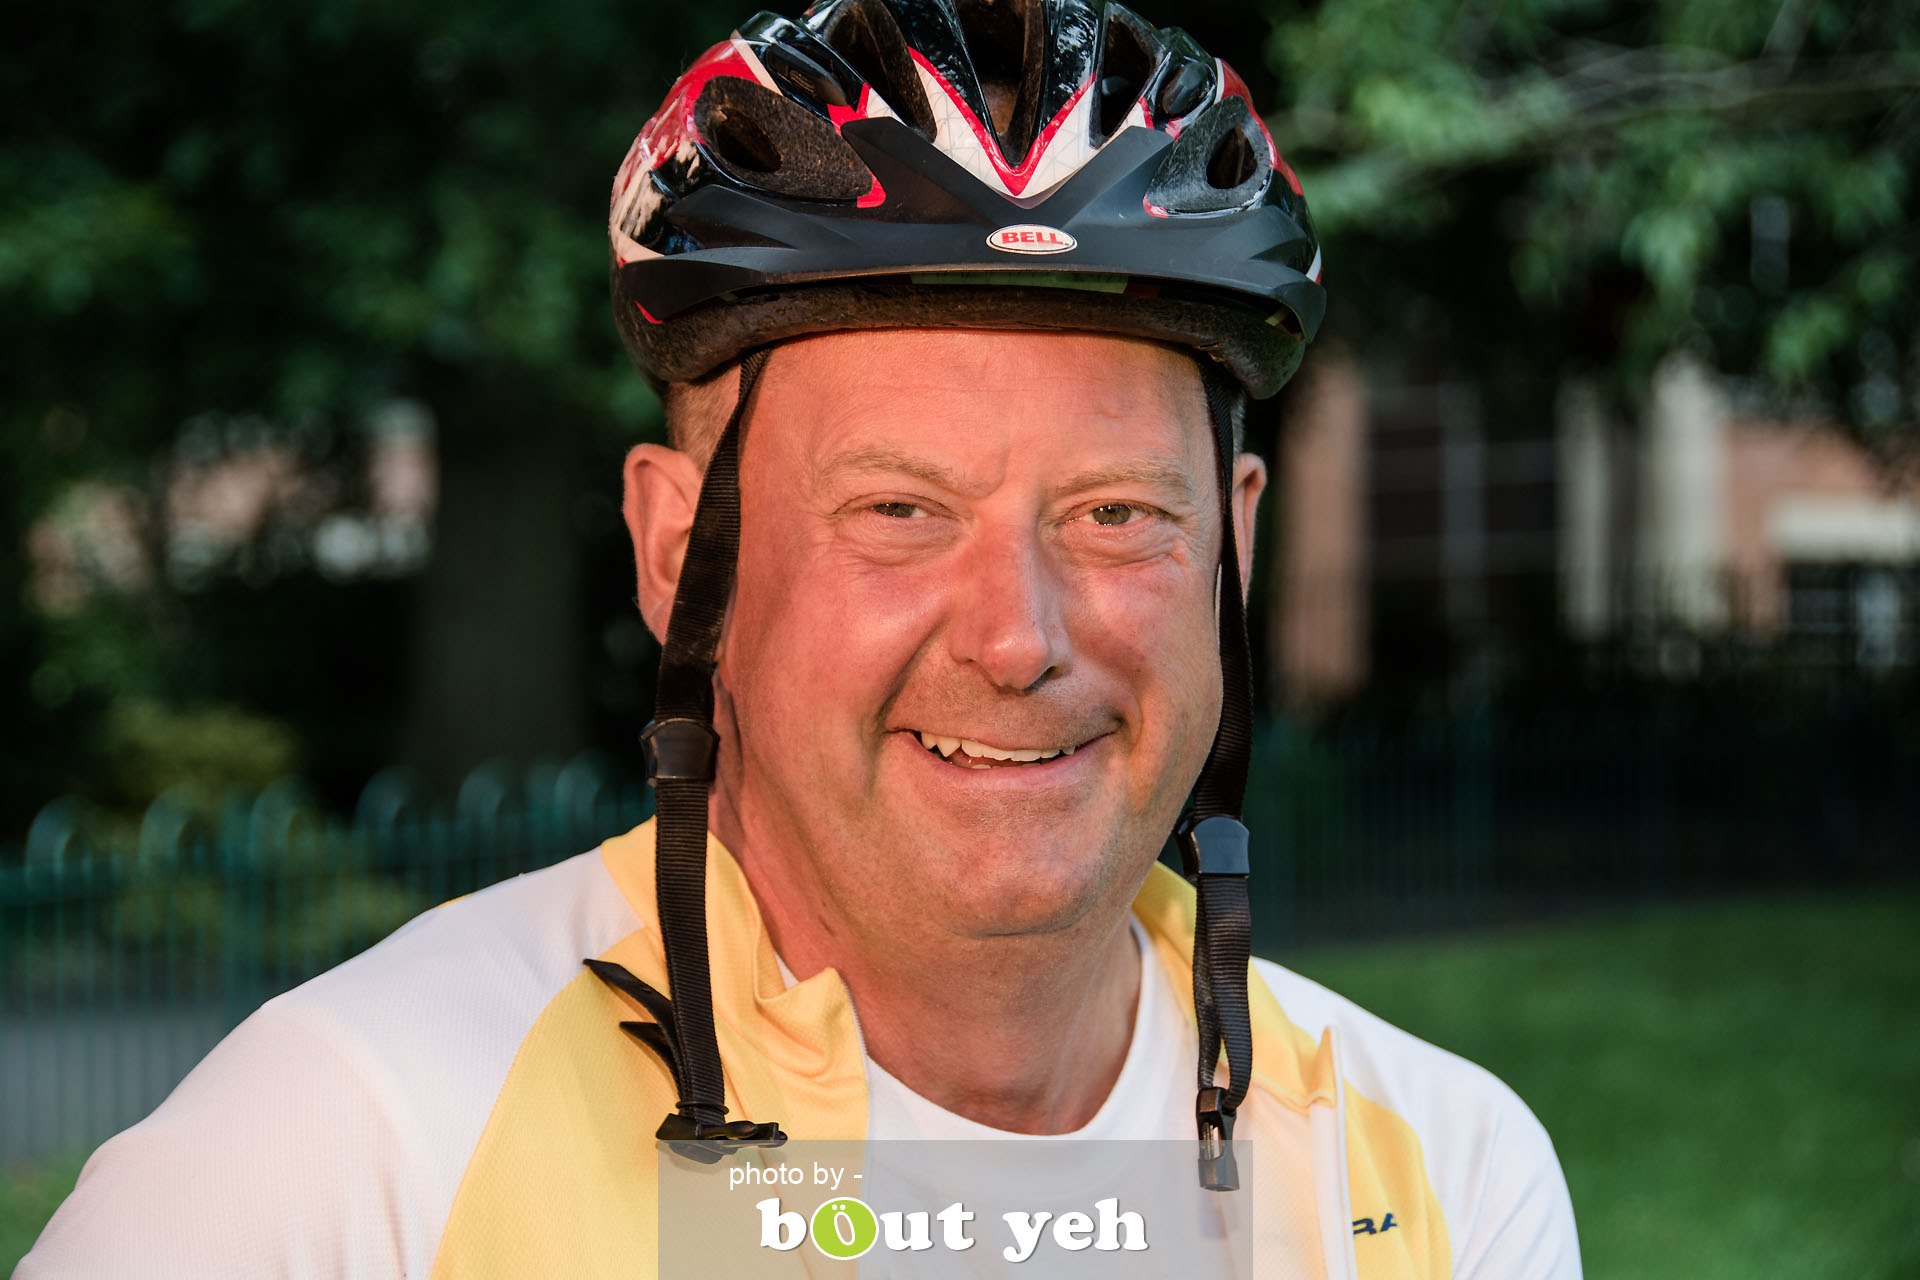 Hugo, of Bed and Bike Cycling Tours, at Botanic Gardens, Belfast, Northern Ireland - photo 7139.